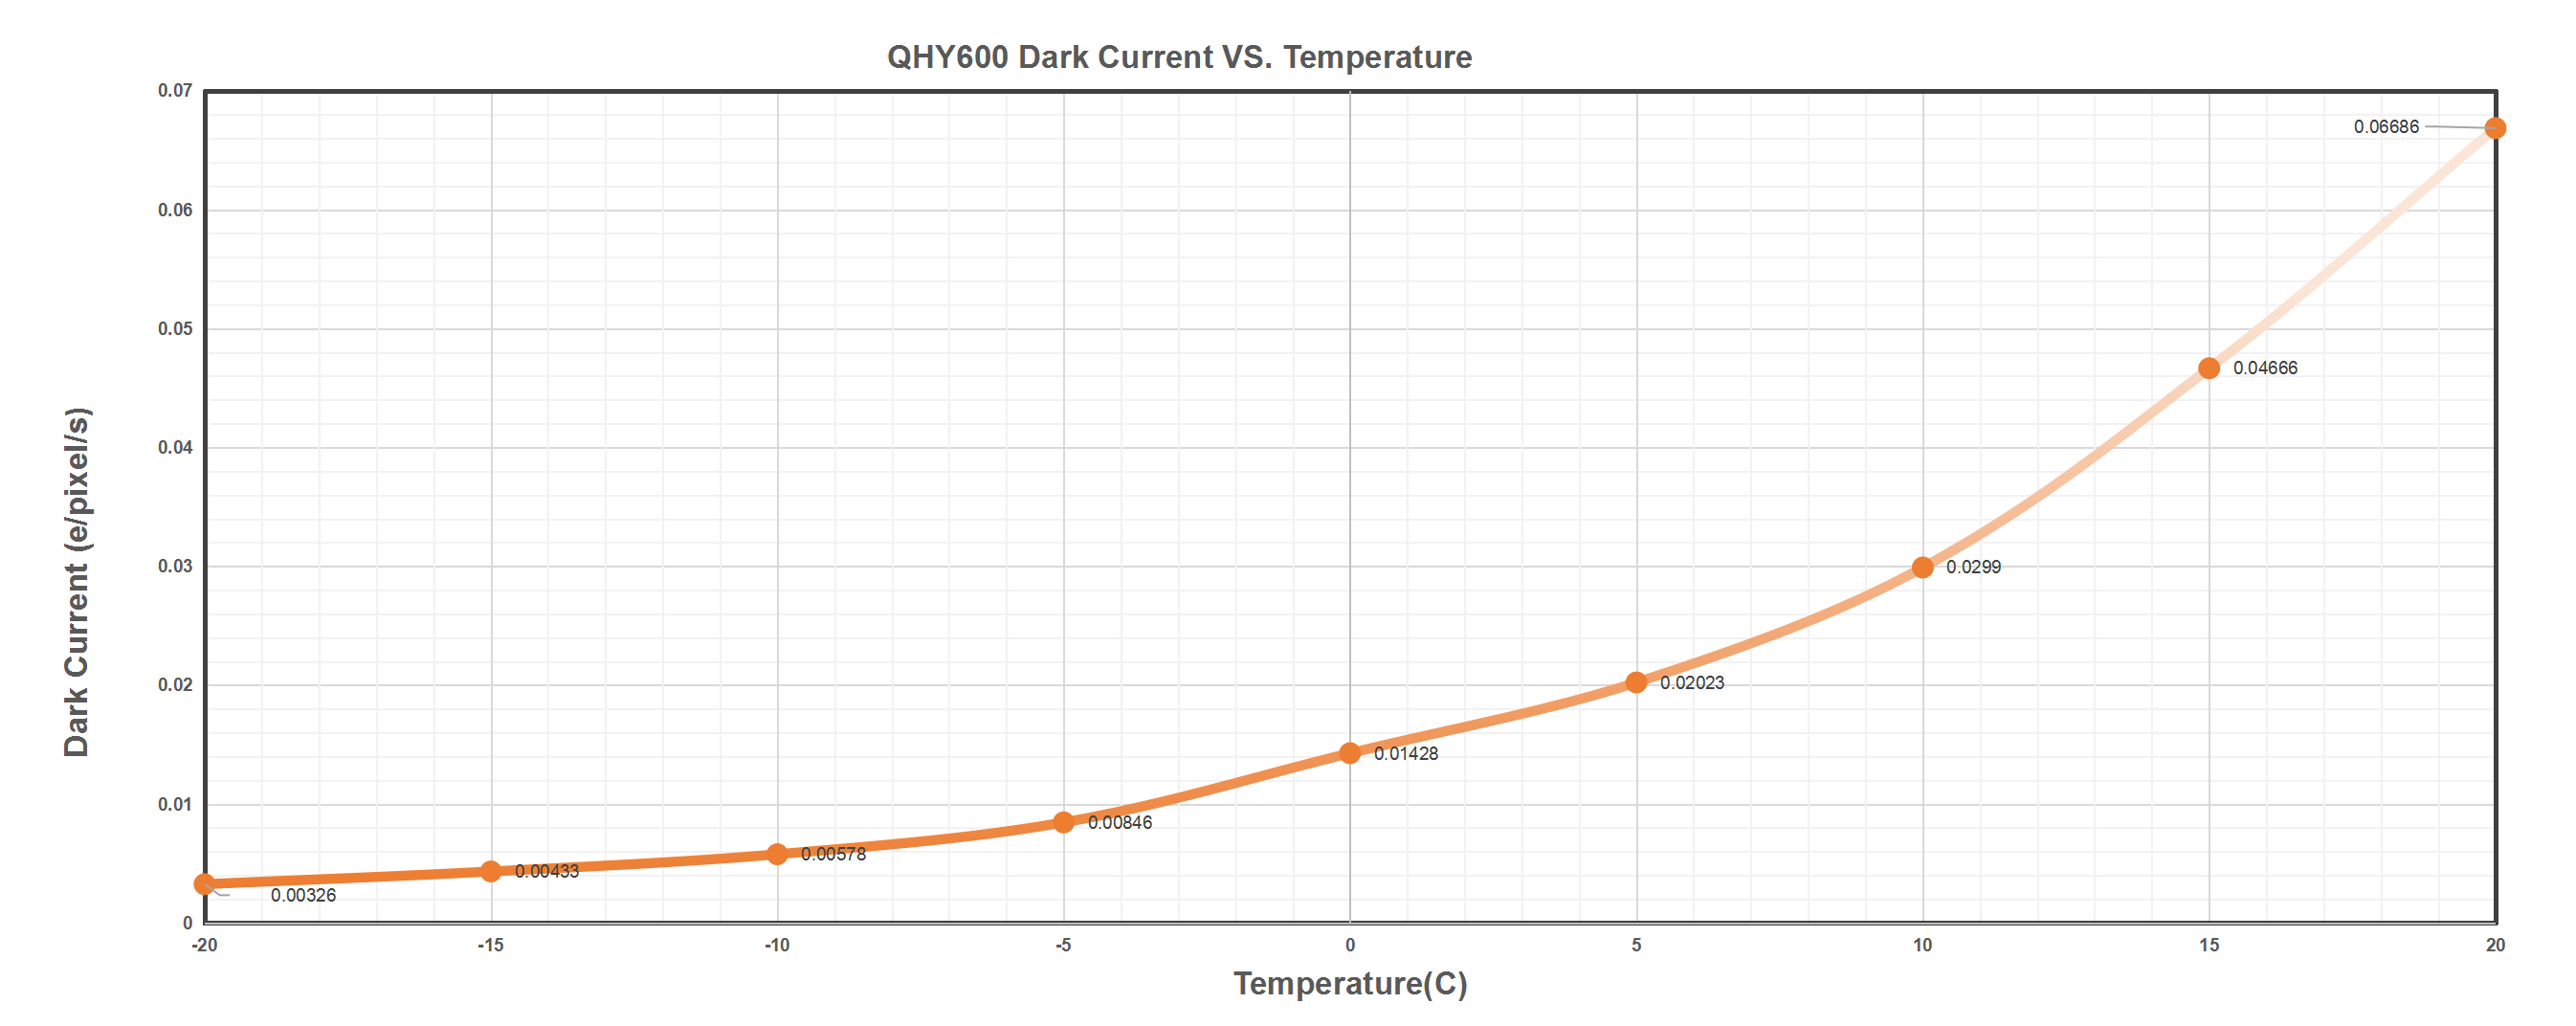 QHY600 Dark Current VS. Temperature